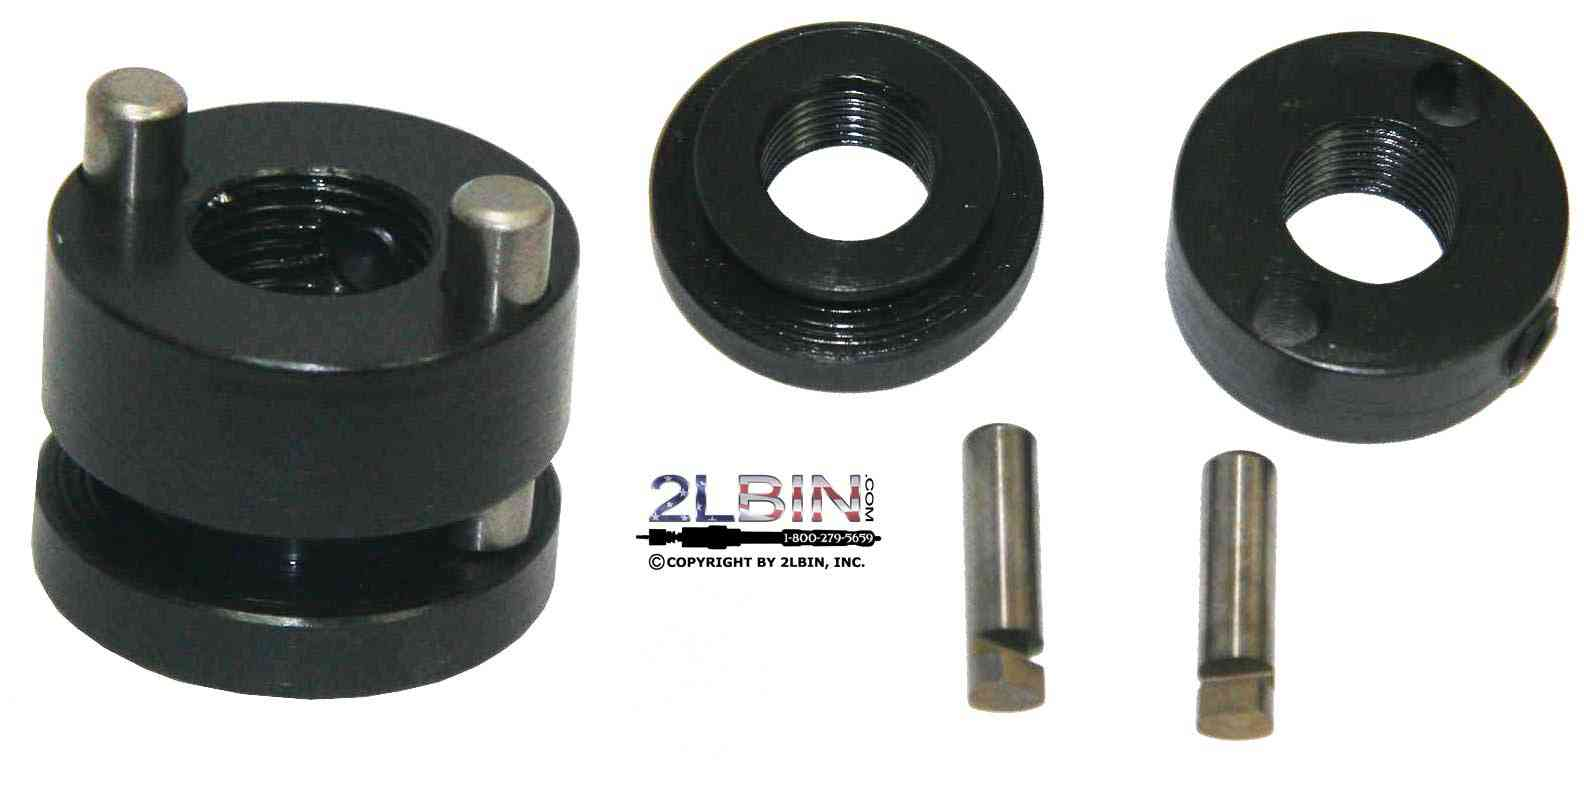 Mandrels for tapping machine boring bar